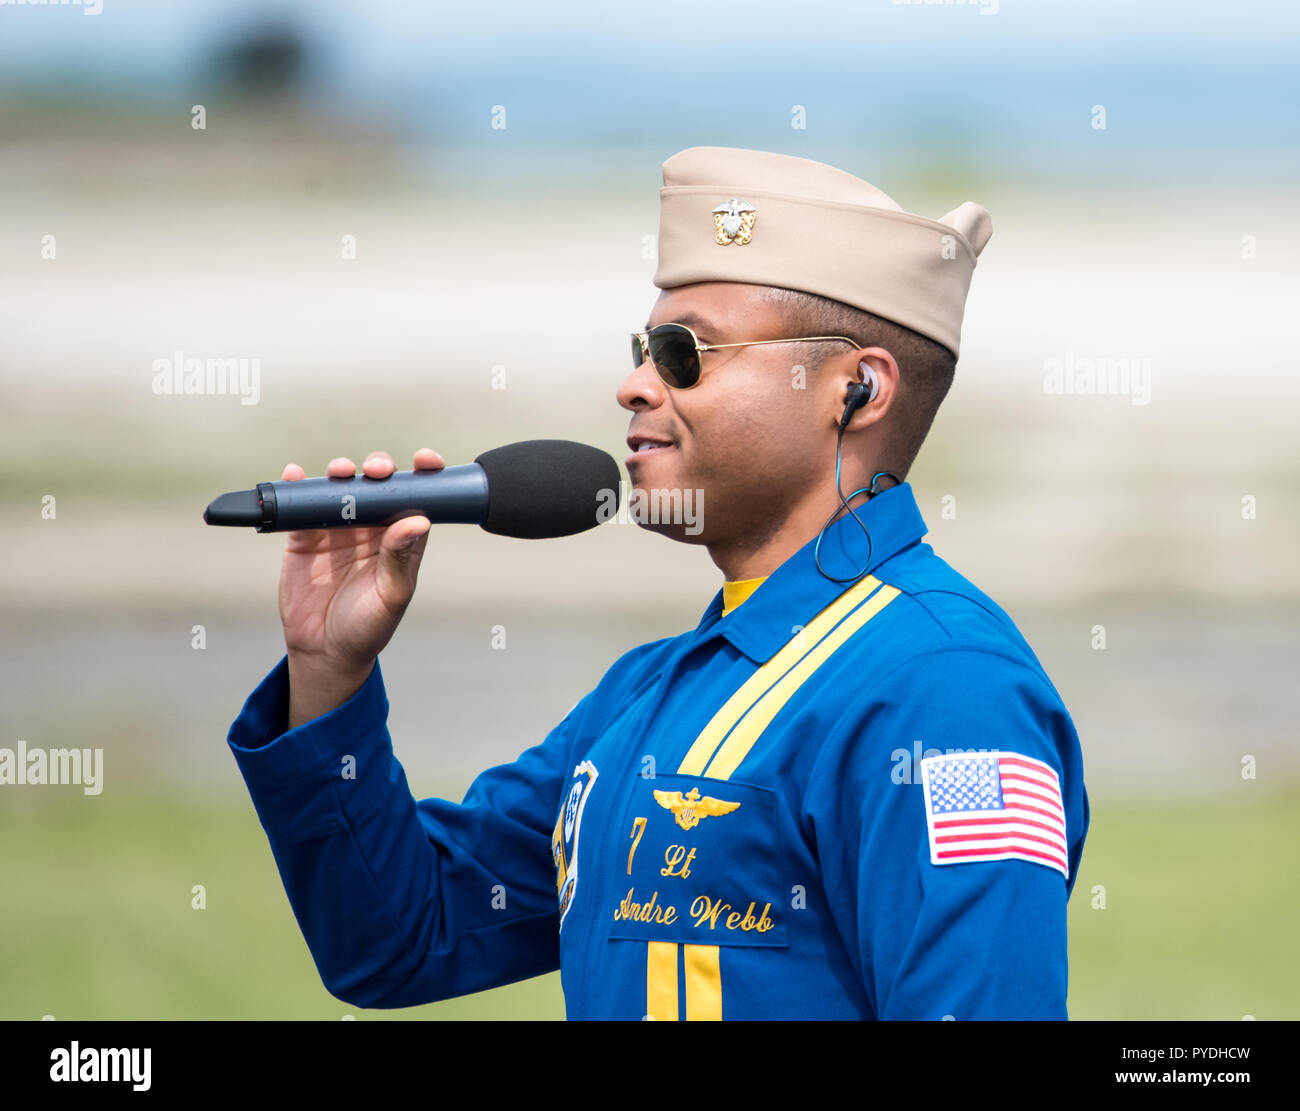 US Navy Blue Angels Lieutenant Commander Andre Webb speaking to the crowd at the Rhode Island National Guard Airshow. - Stock Image